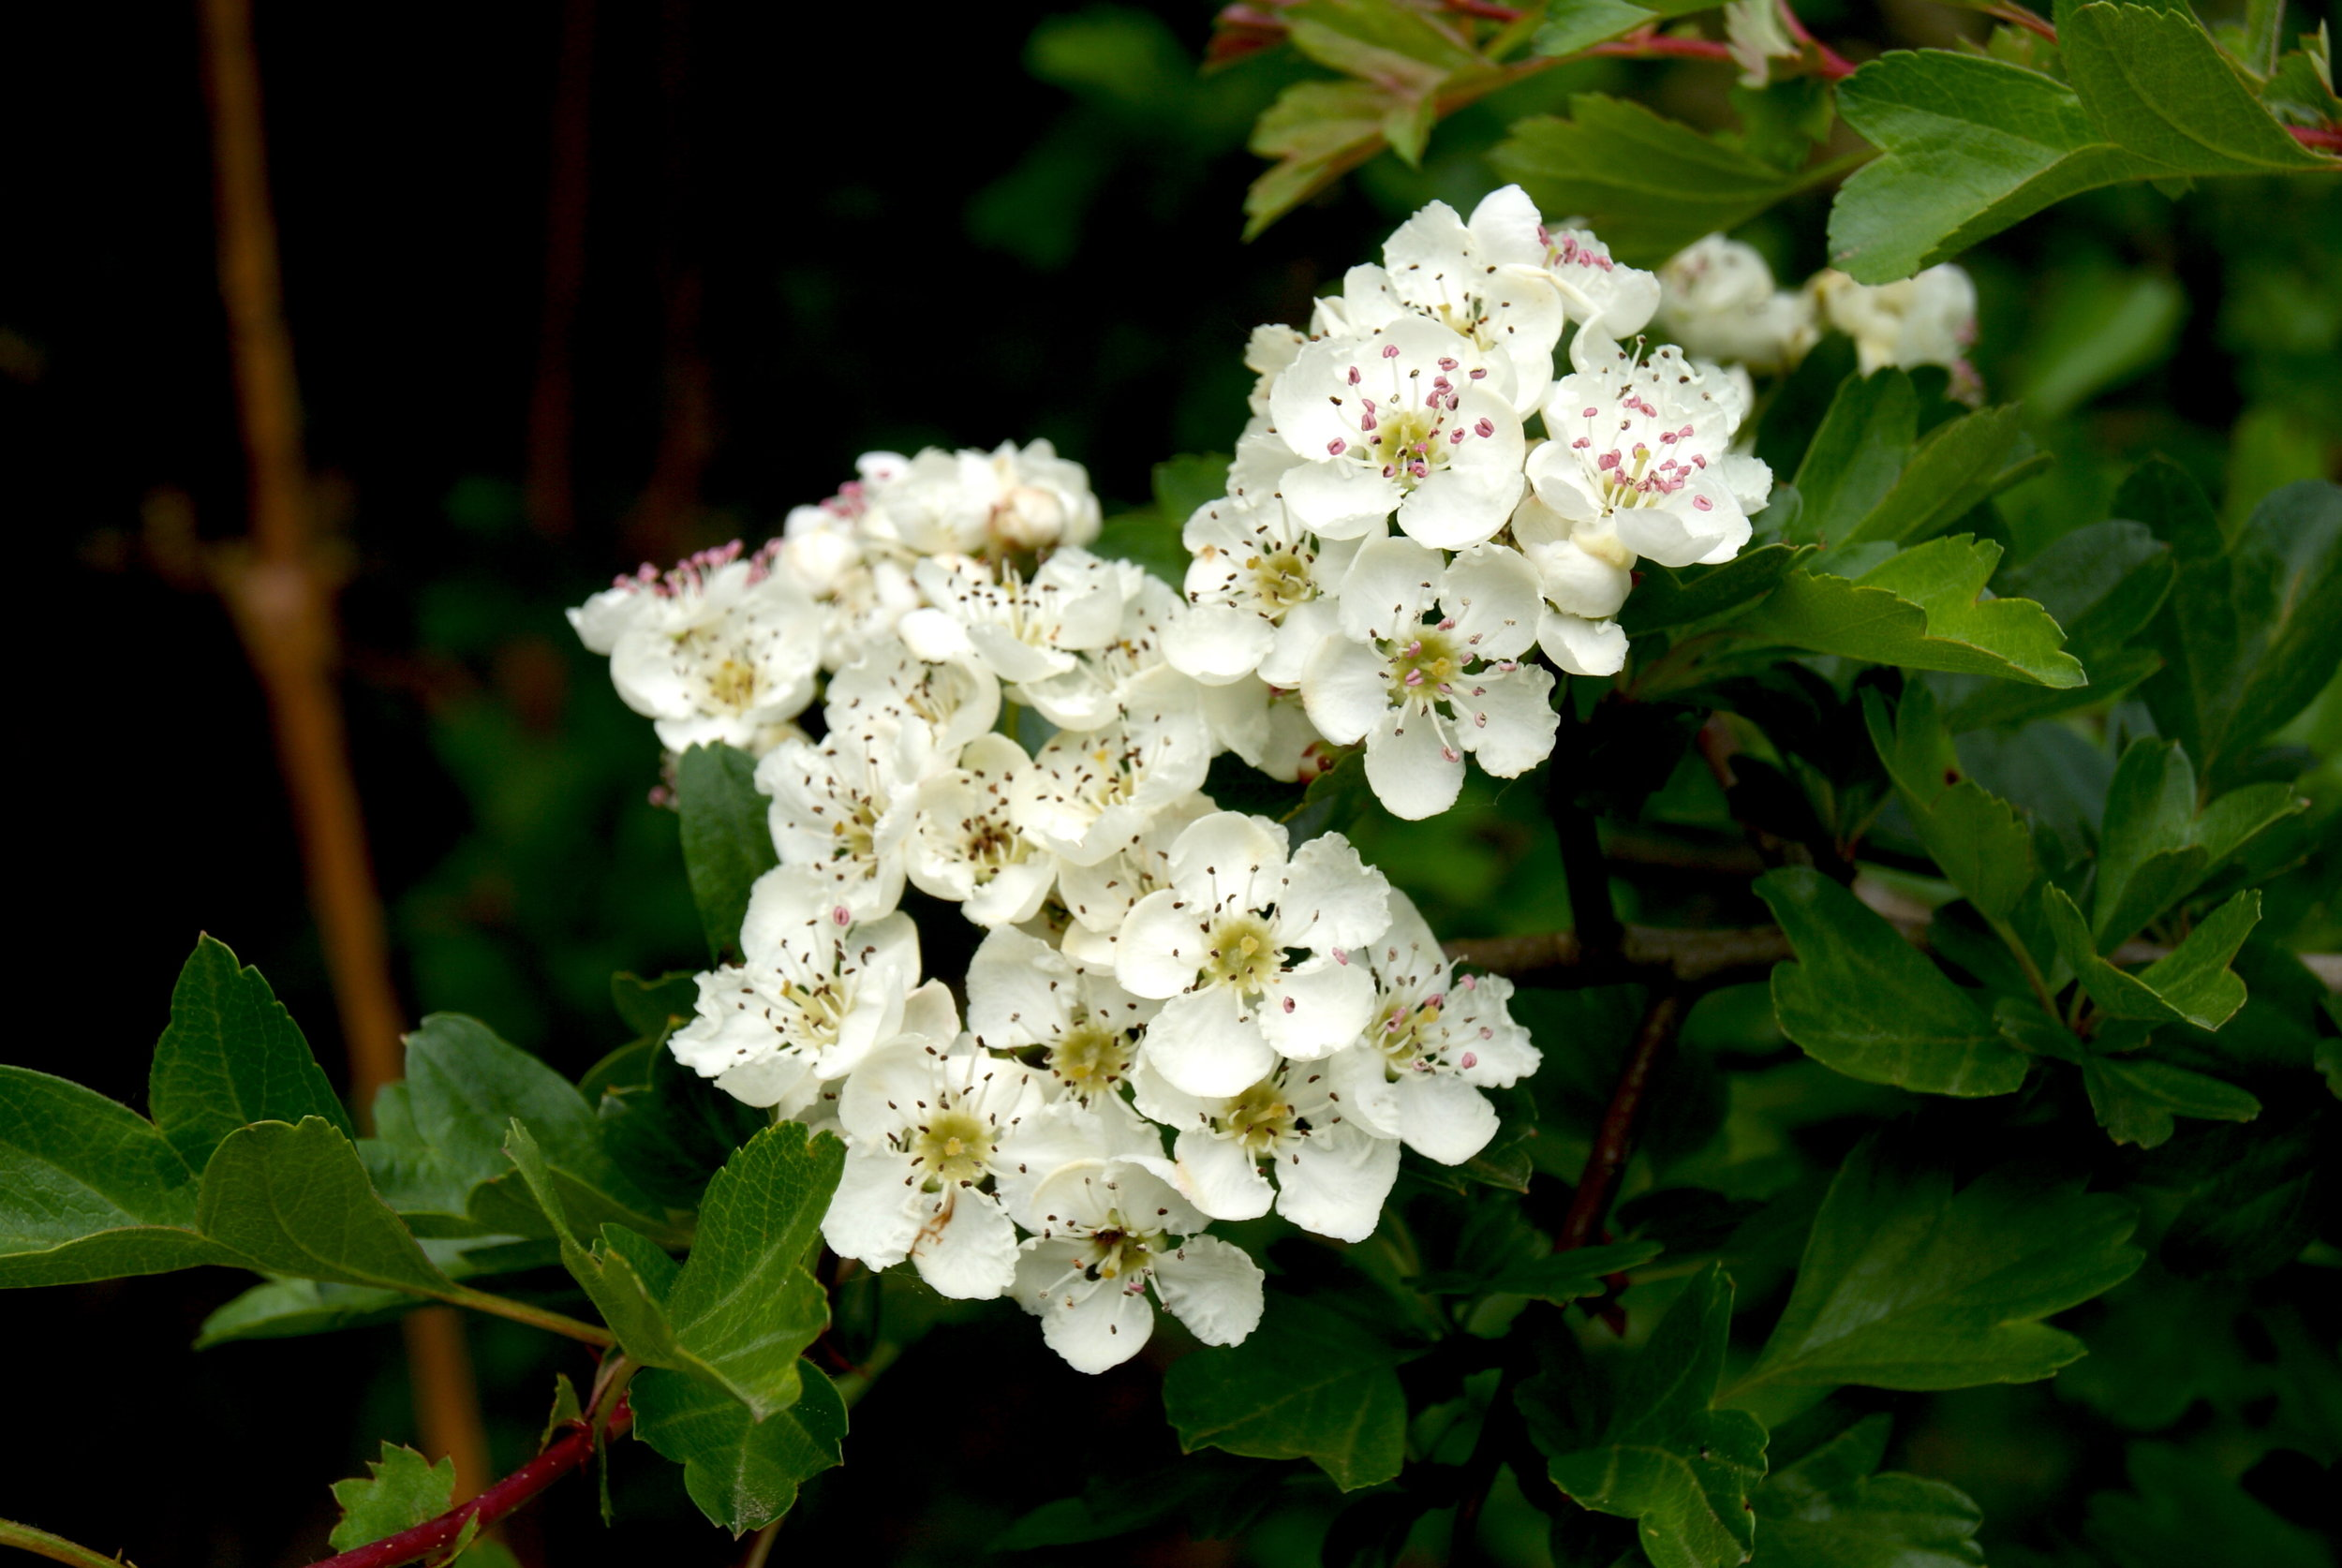 Hawthorn 'mayflowers' in bloom